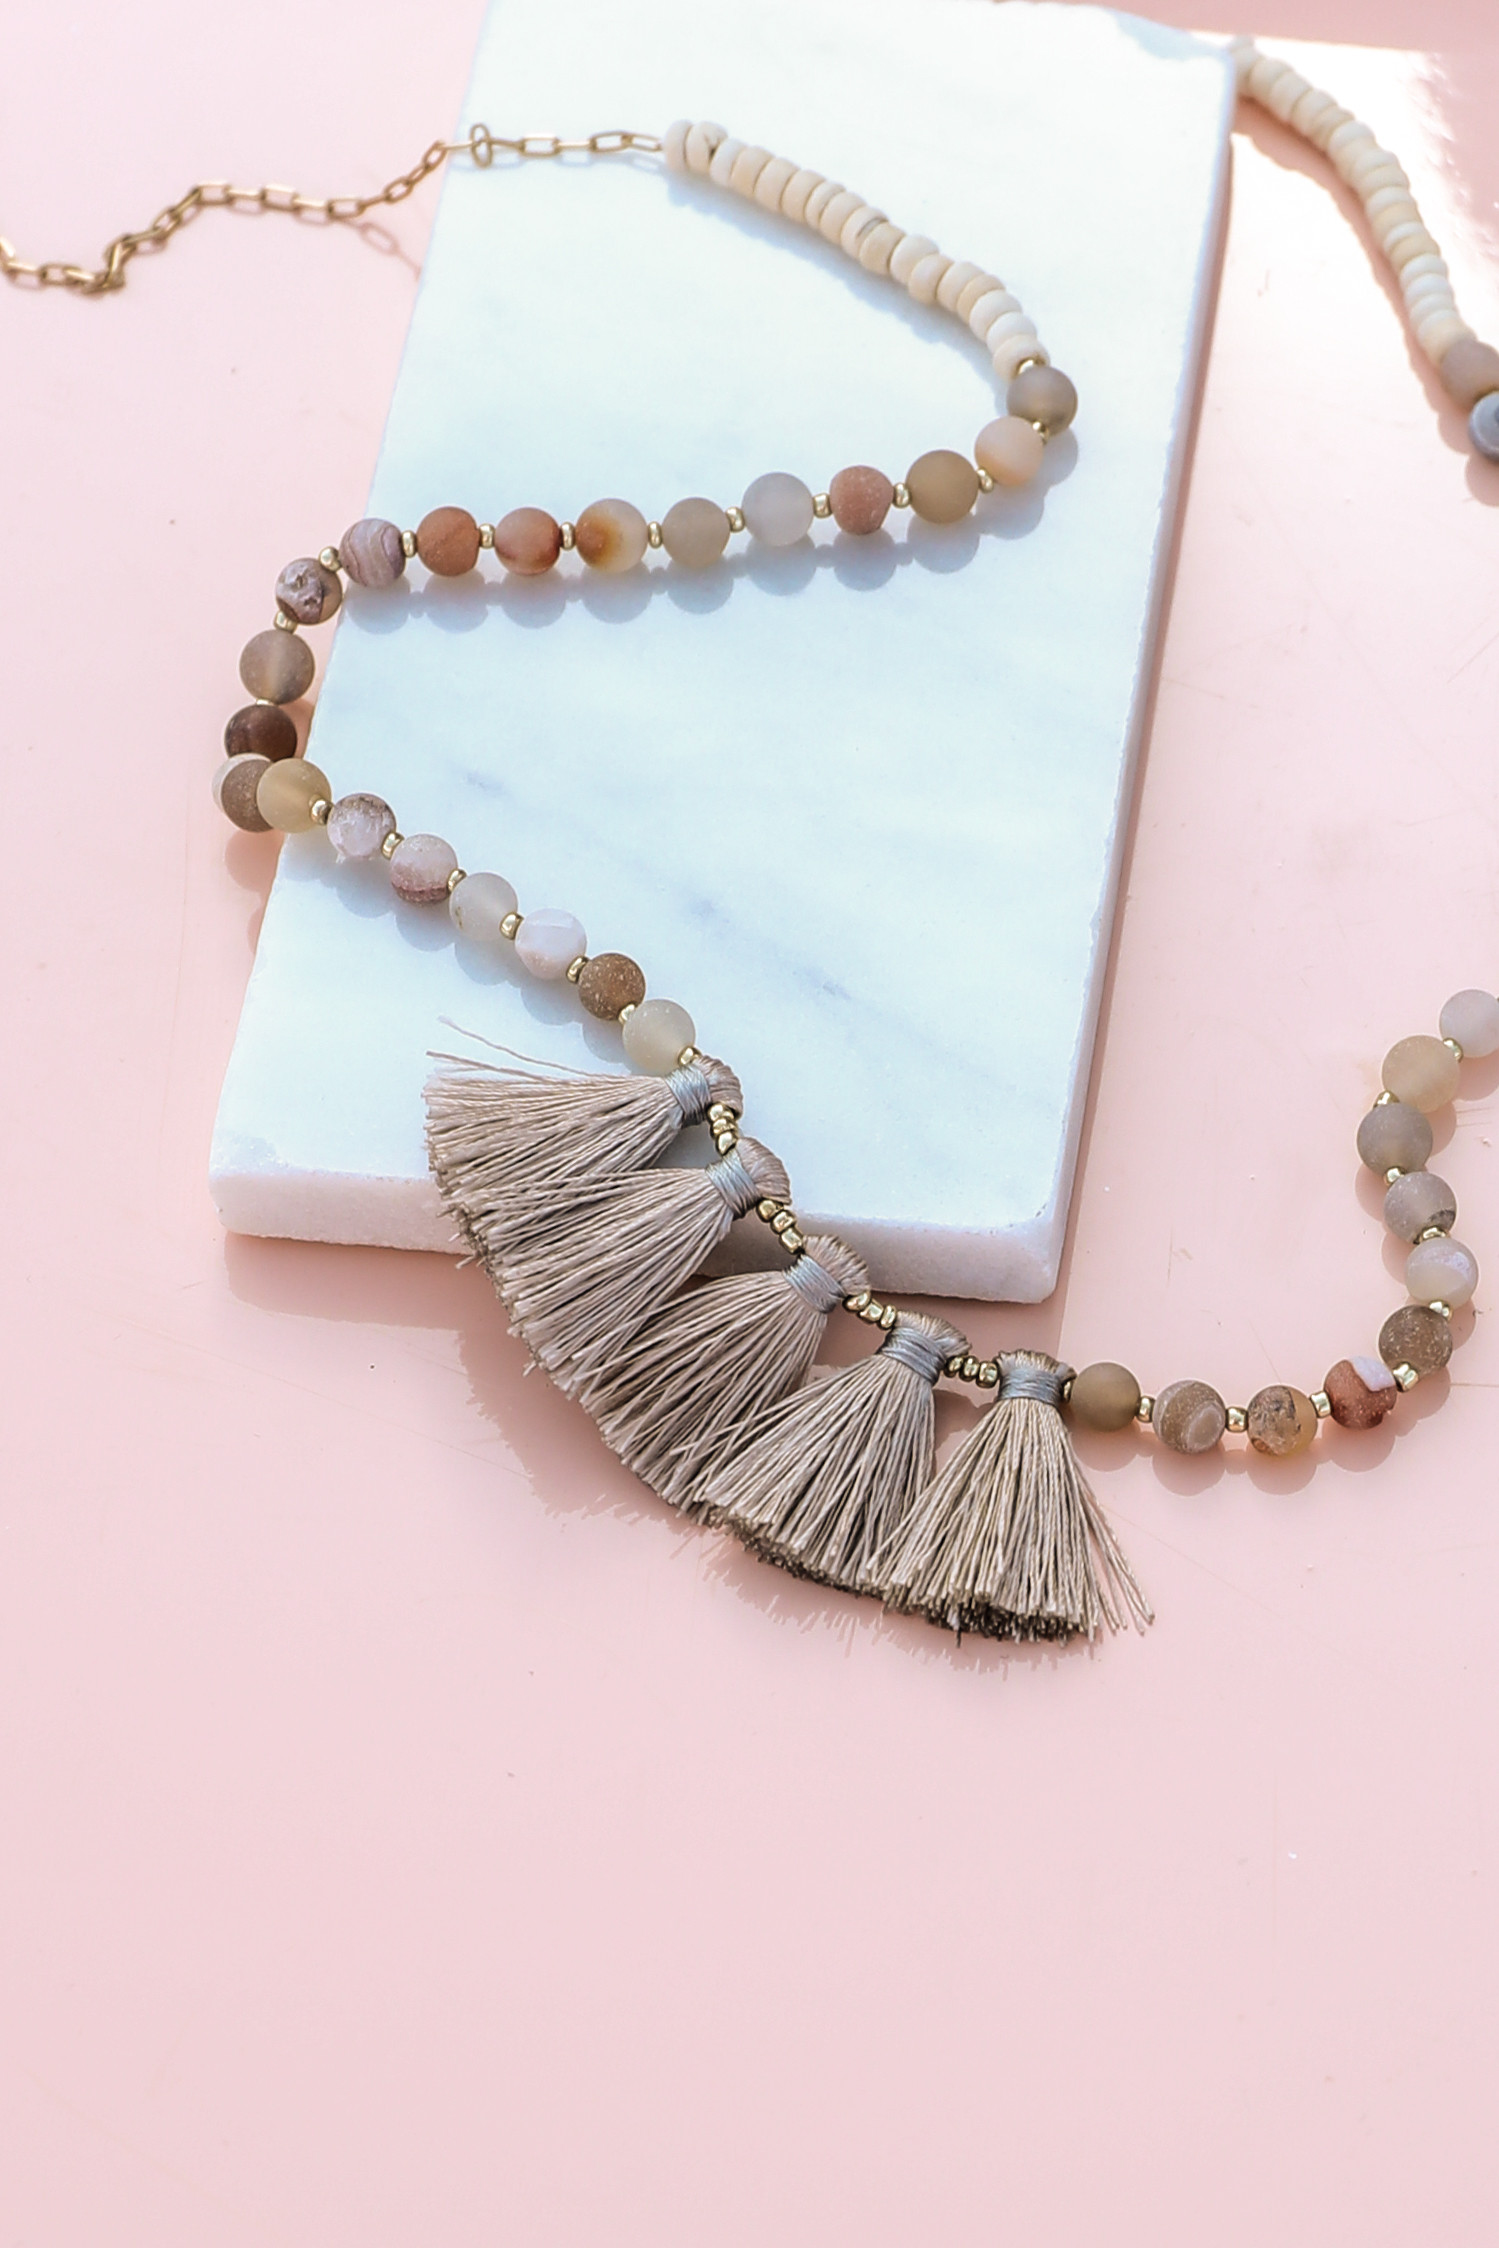 Earth Tone Beaded Necklace with Silver Tassel Details